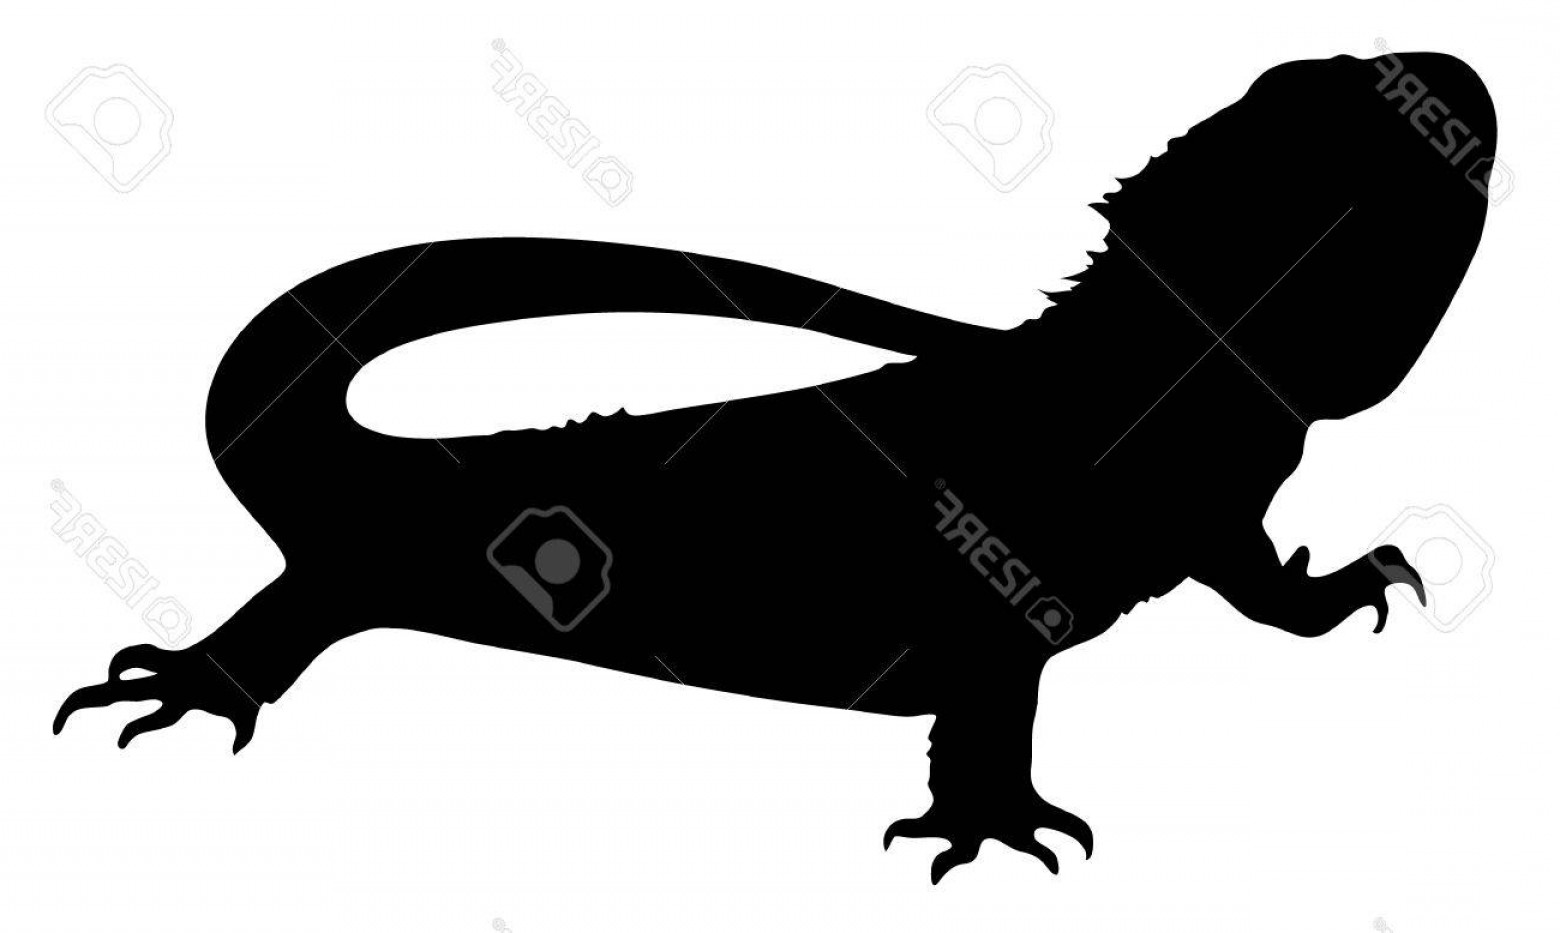 Bearded dragon silhouette clipart freeuse stock Photovector Graphic Silhouette Of A Bearded Dragon | SOIDERGI freeuse stock